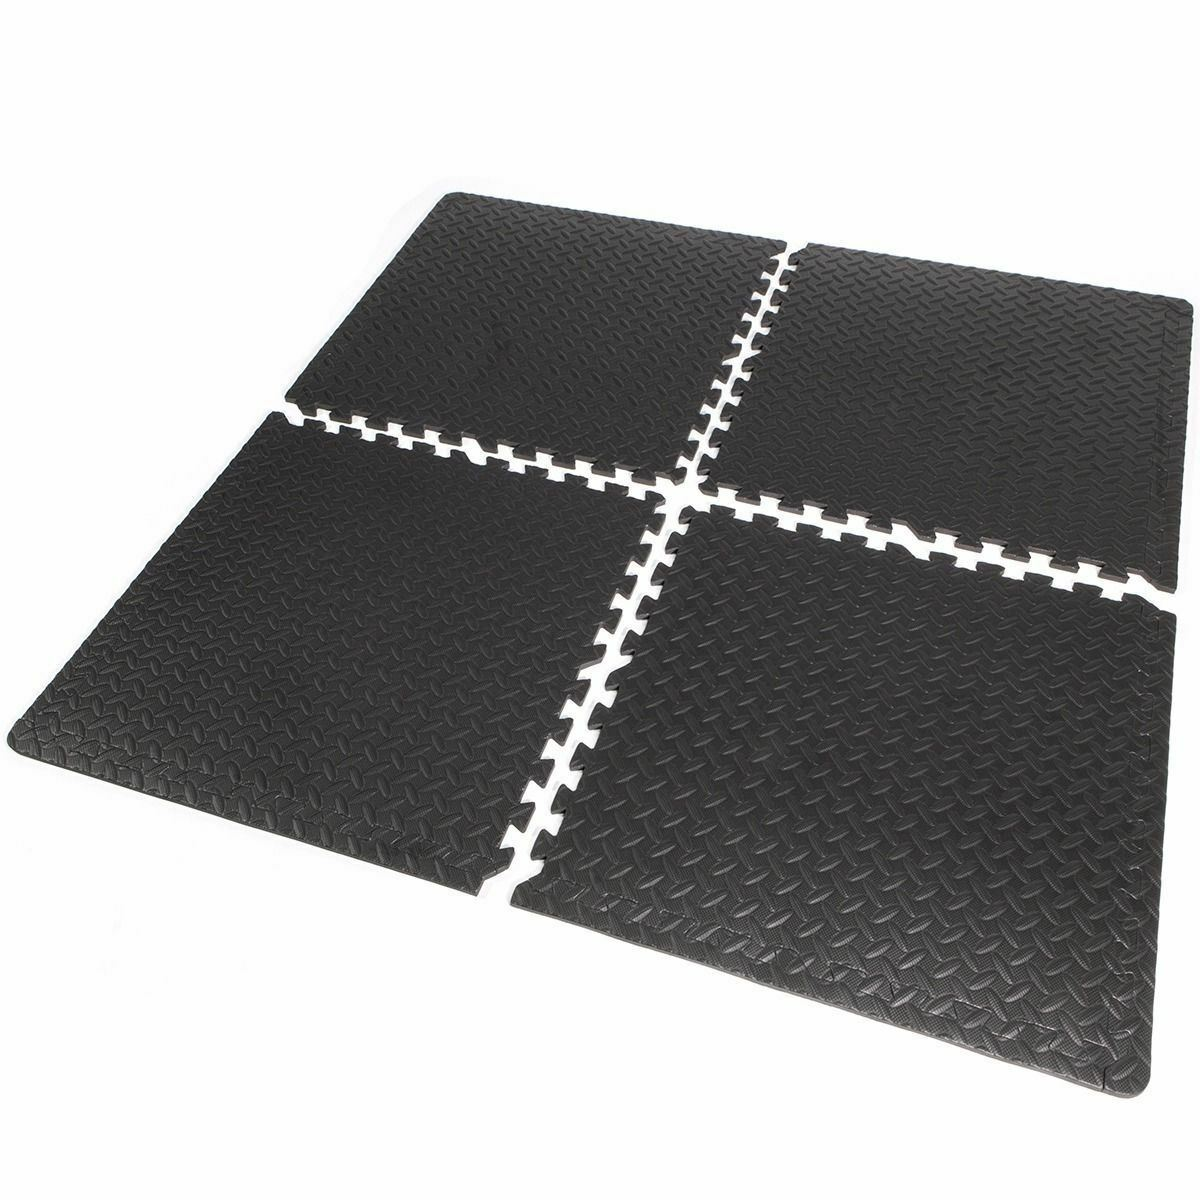 rubber floor mats for gym. Picture 1 Of 5 Rubber Floor Mats For Gym O